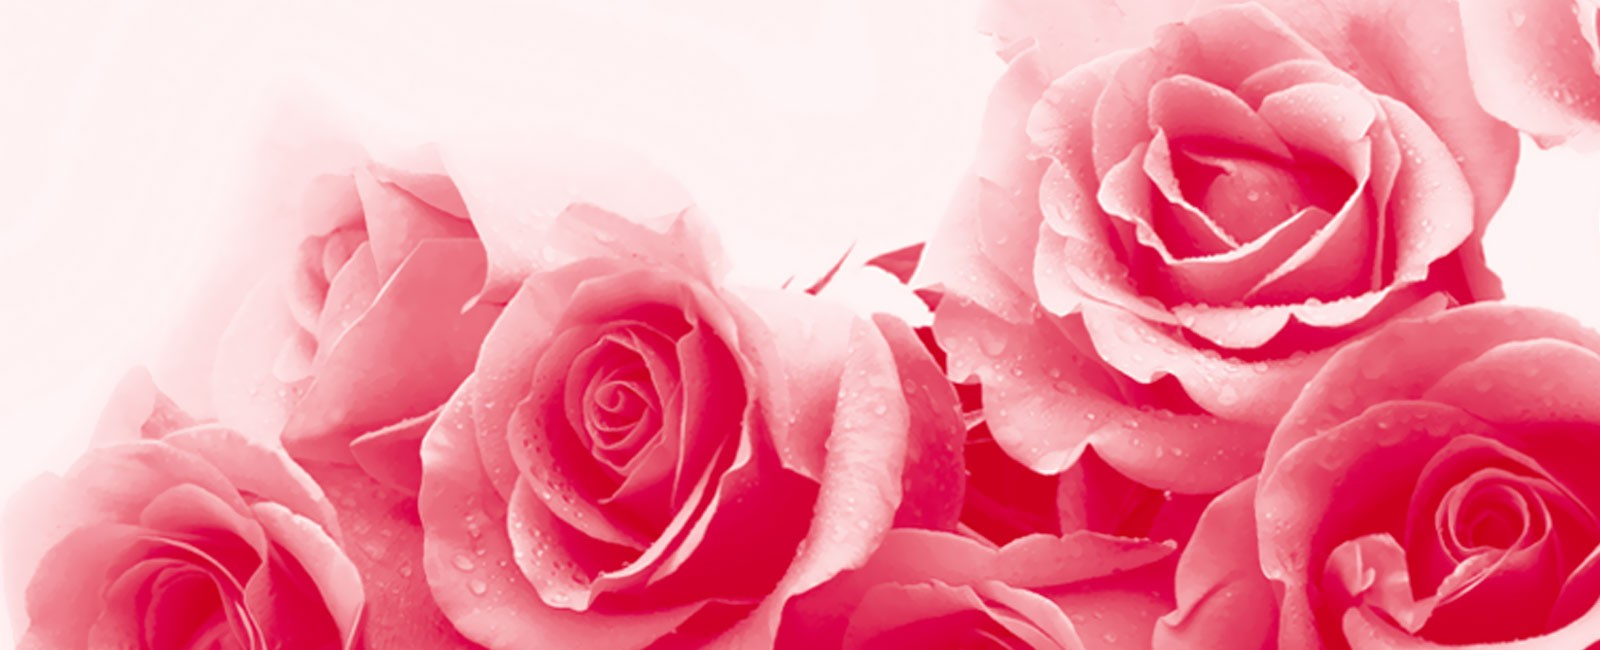 Send flowers in Holborn. No delivery fee - same day delivery